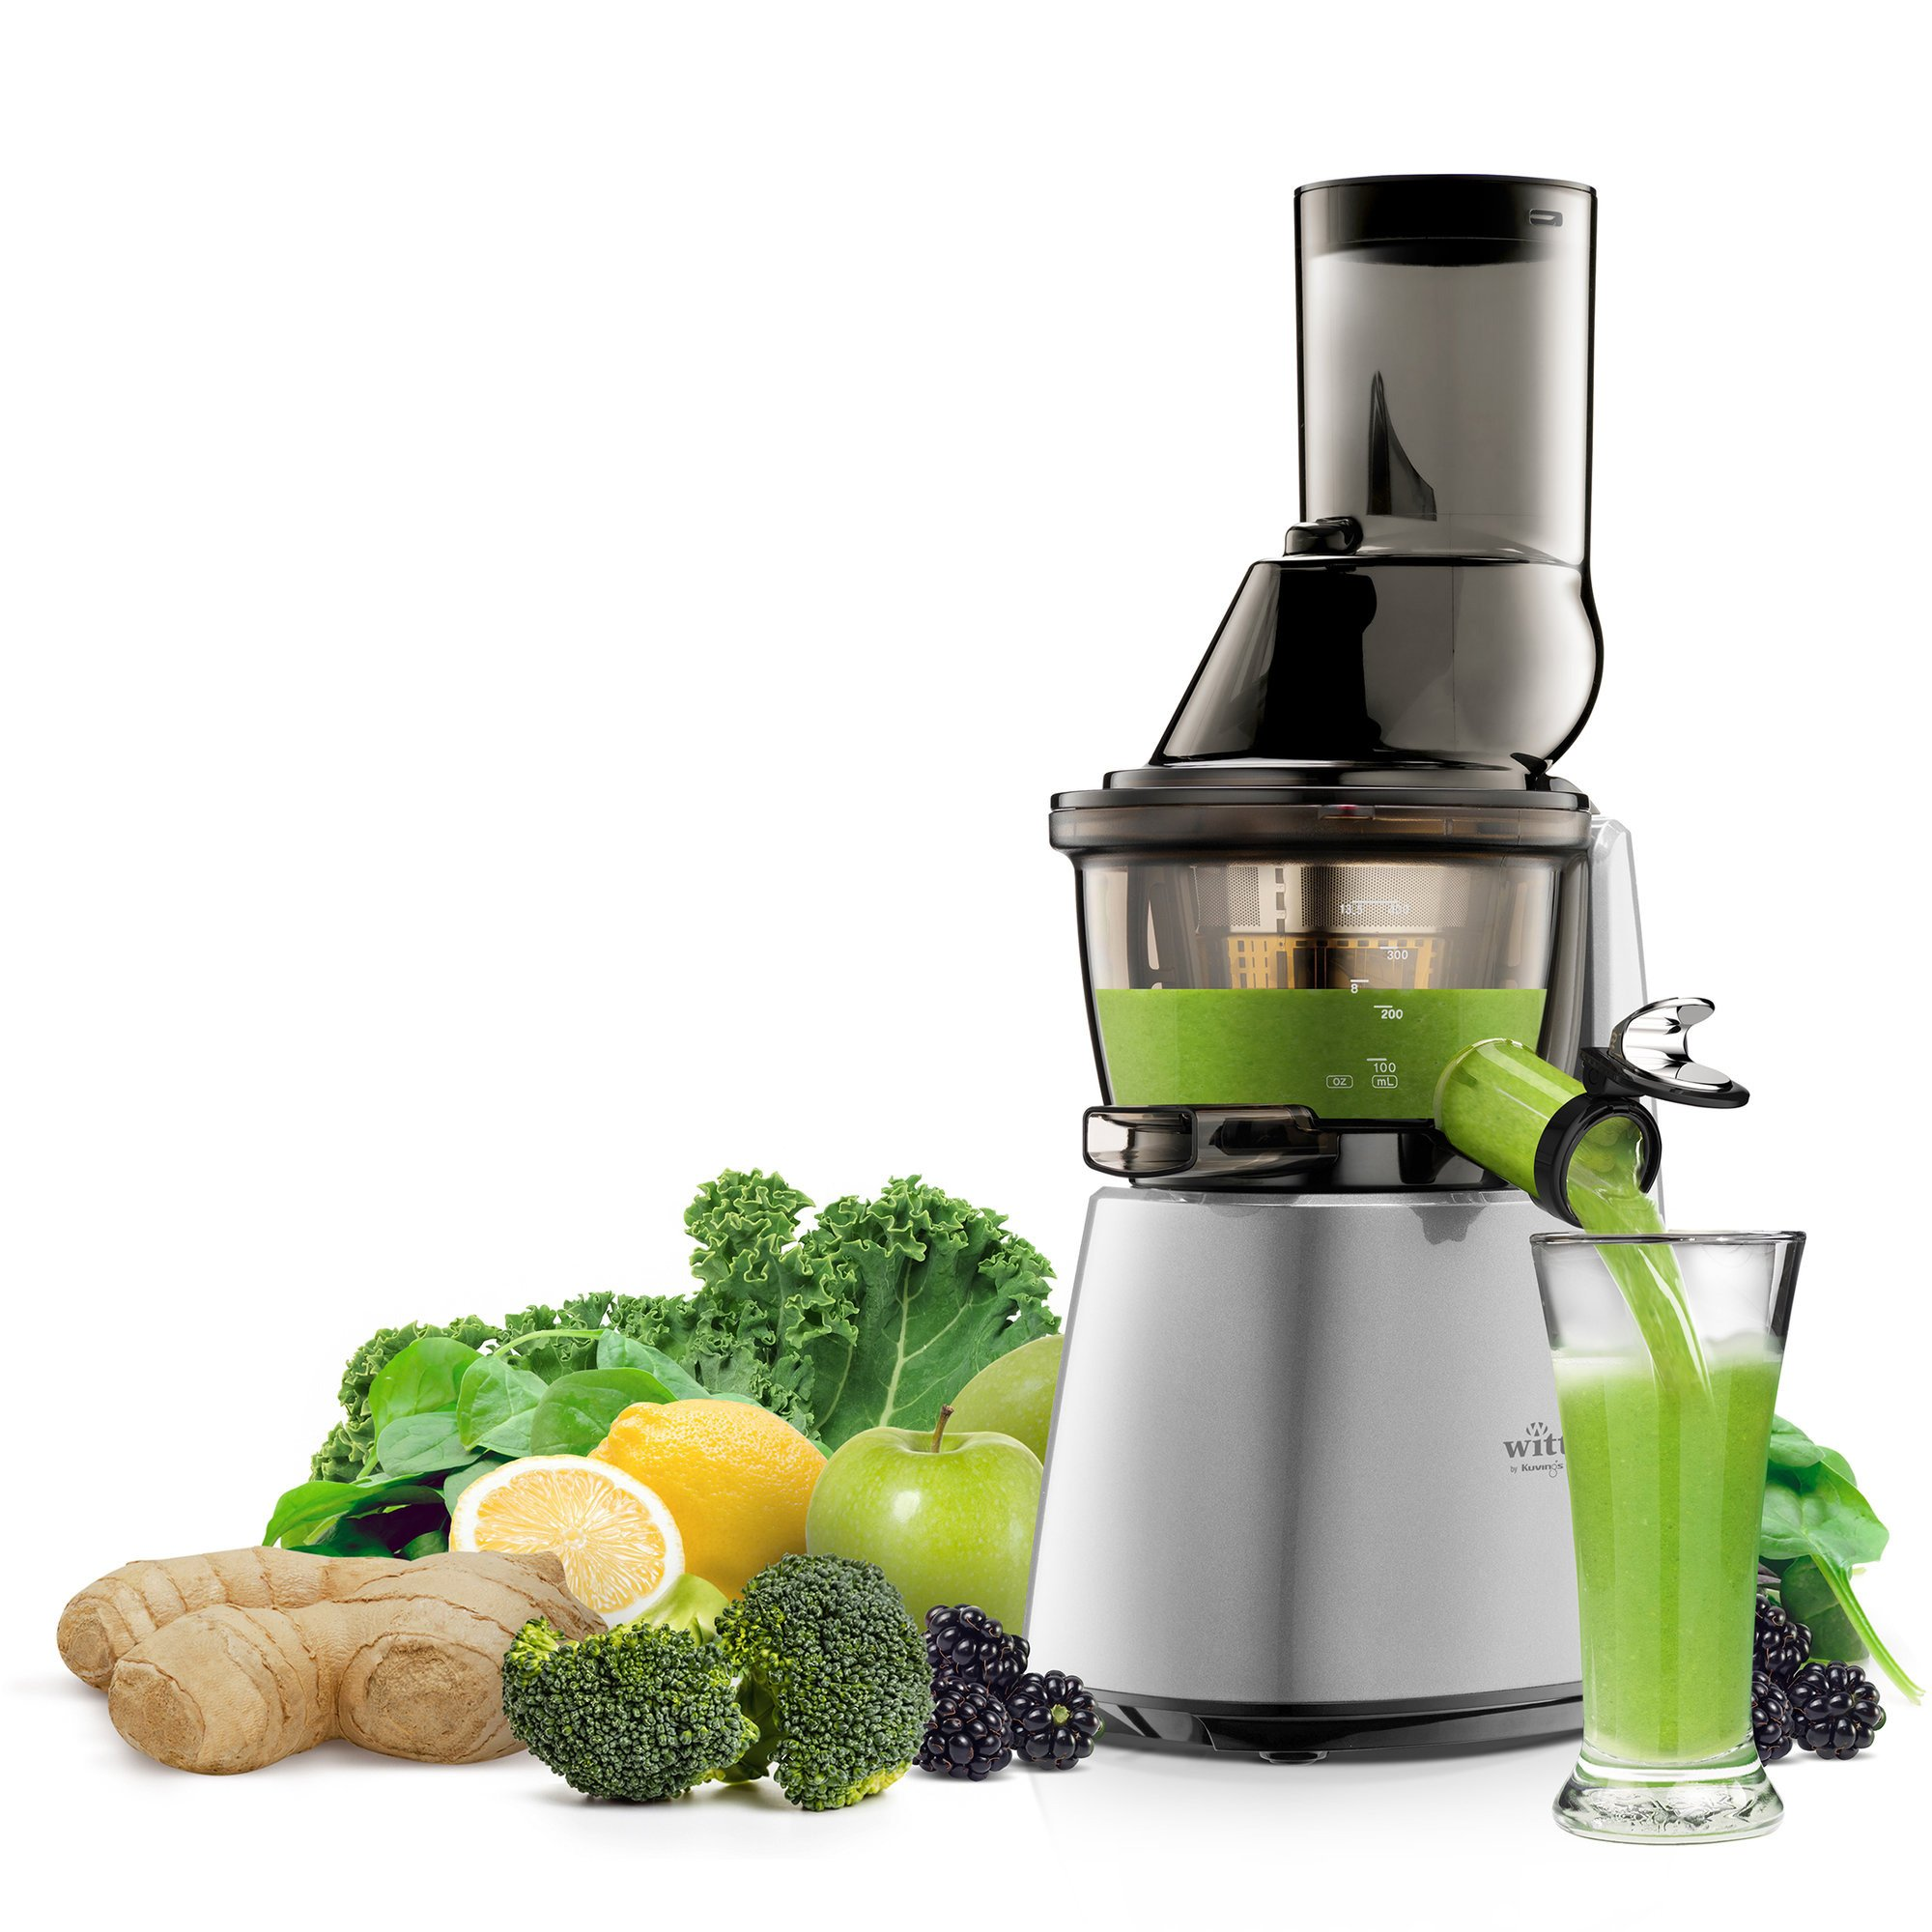 Kuvings Slow Juicer Tilbud : C9600 S Slow Juicer solv fra Witt by Kuvings Gratis Levering